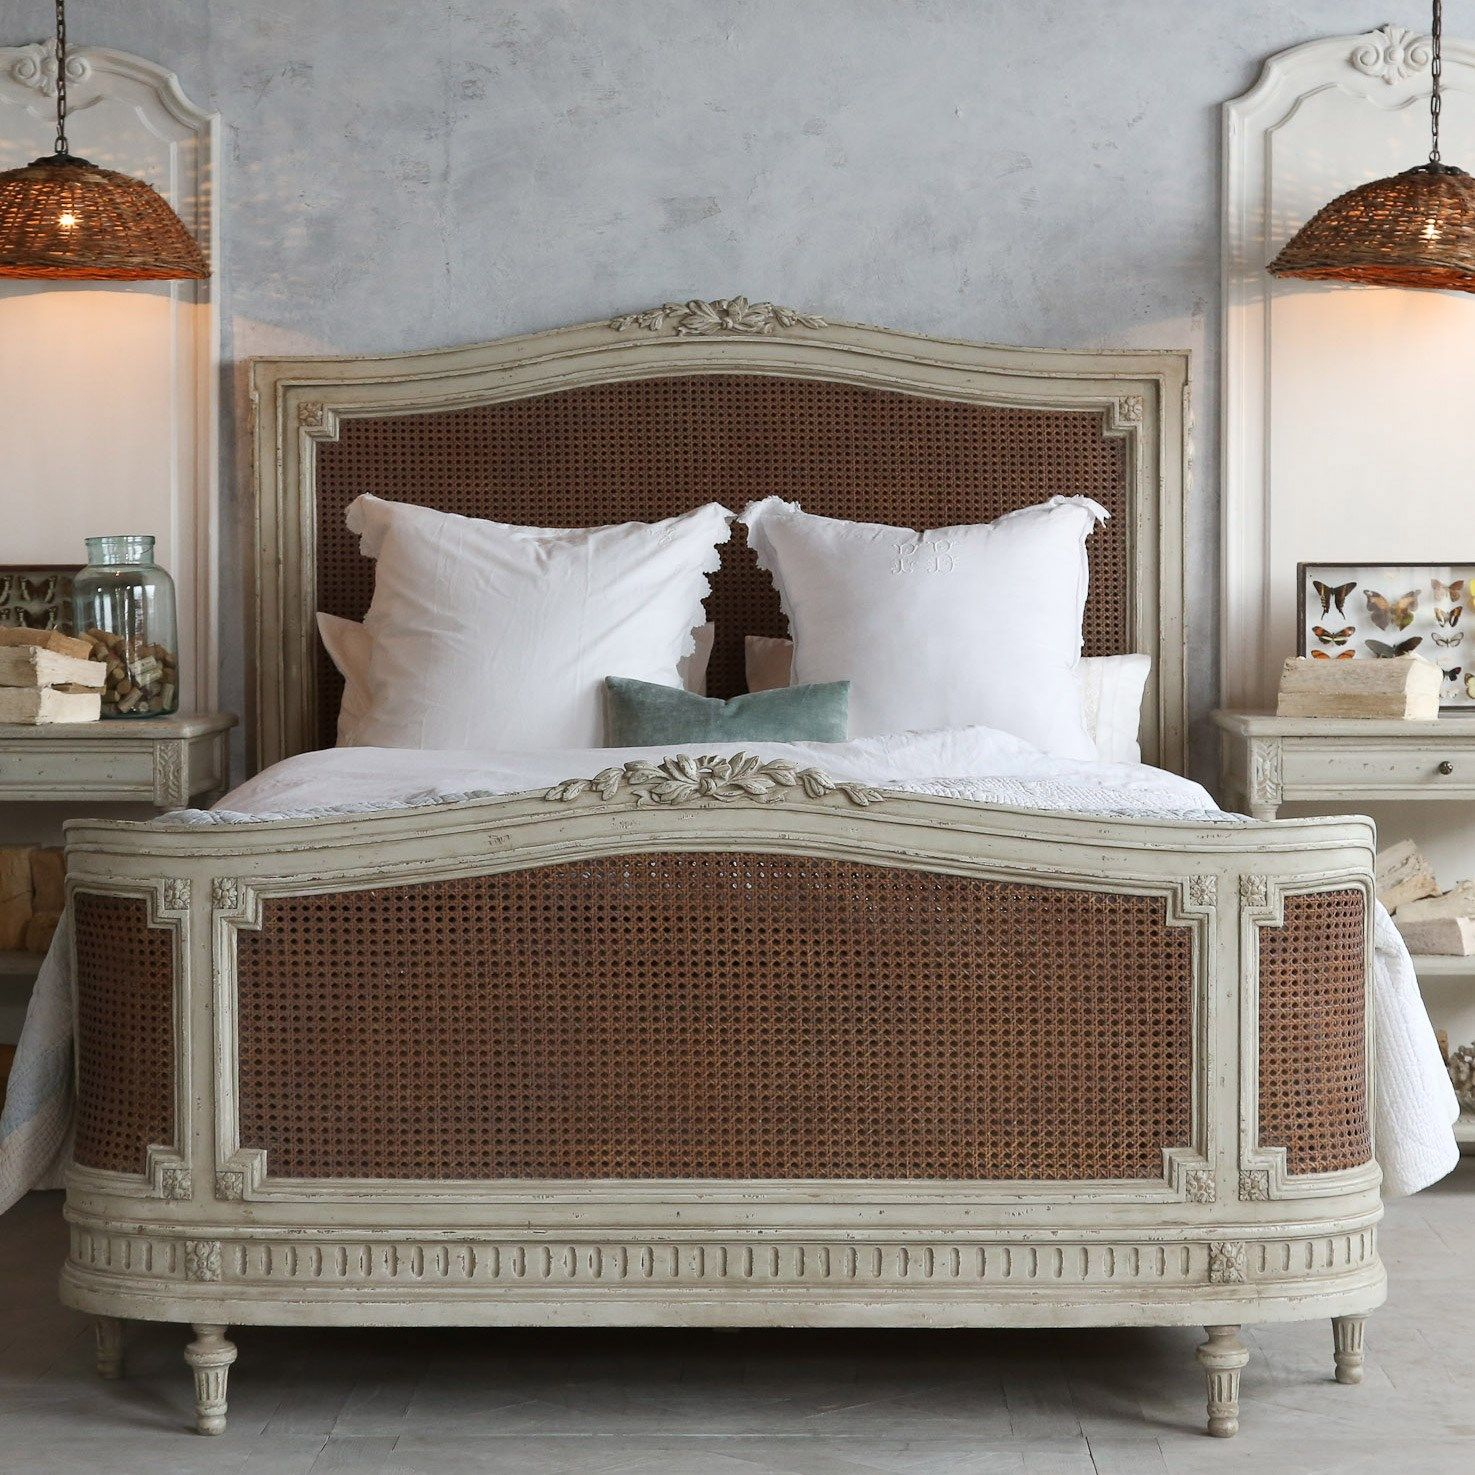 Eloquence Arabella Natural Cane Bed Layla Grayce #